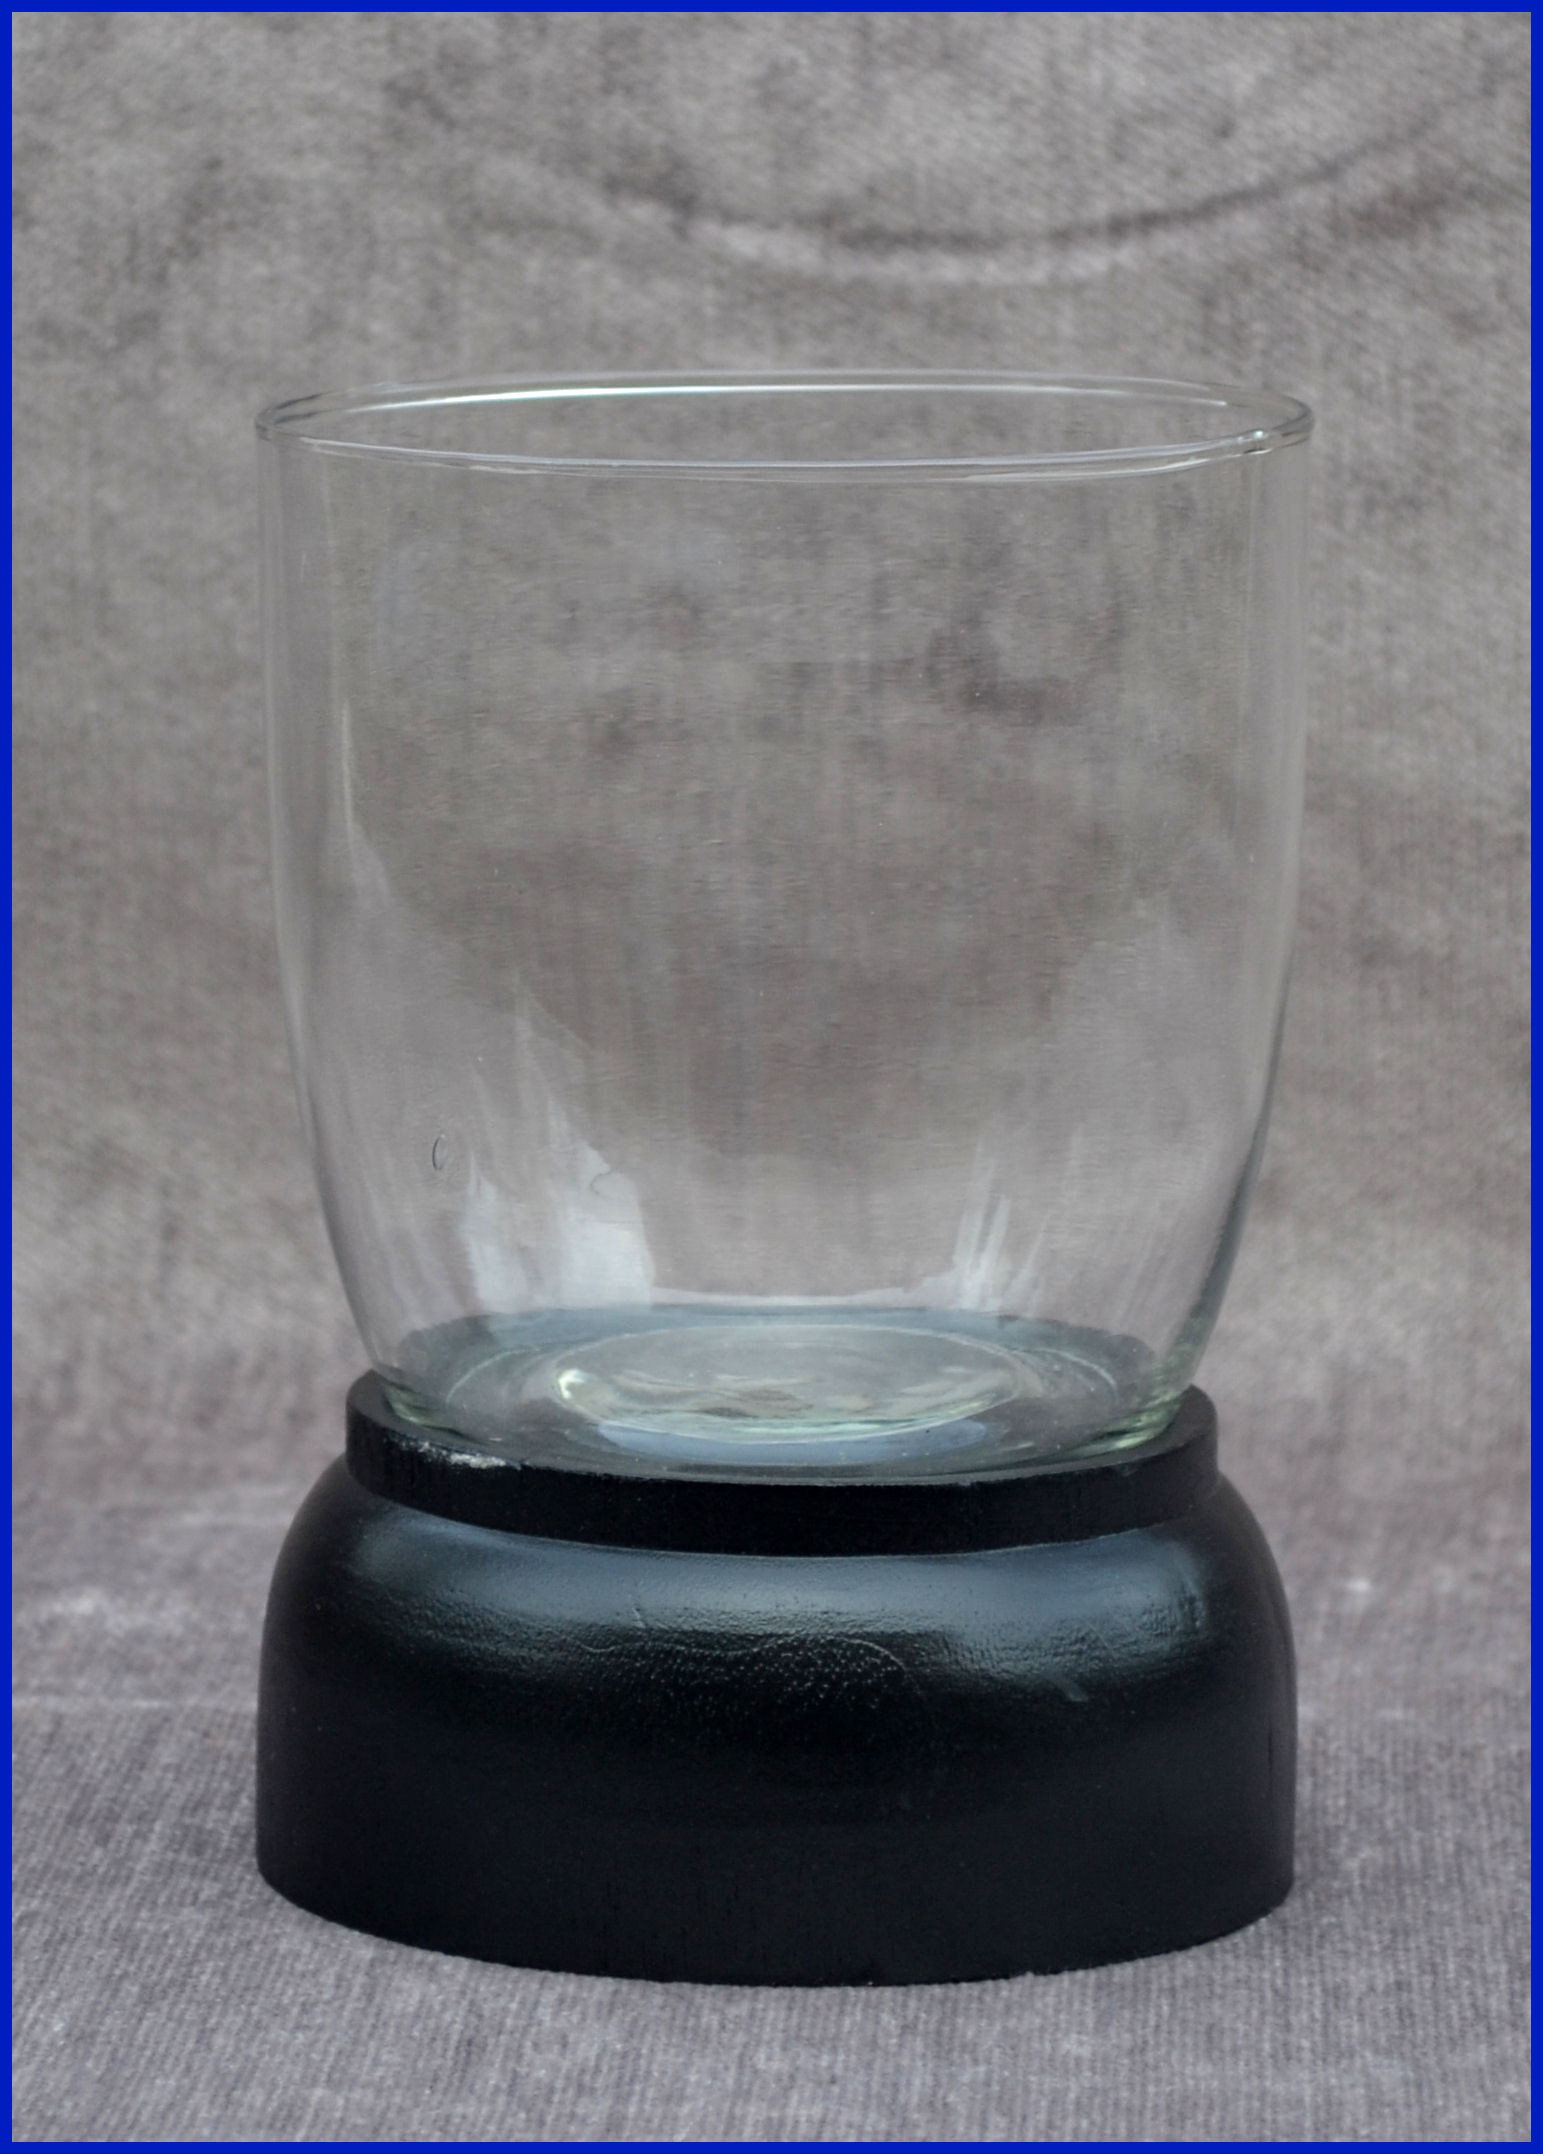 glass-candle-holder-with-wooden-base-656082.jpg